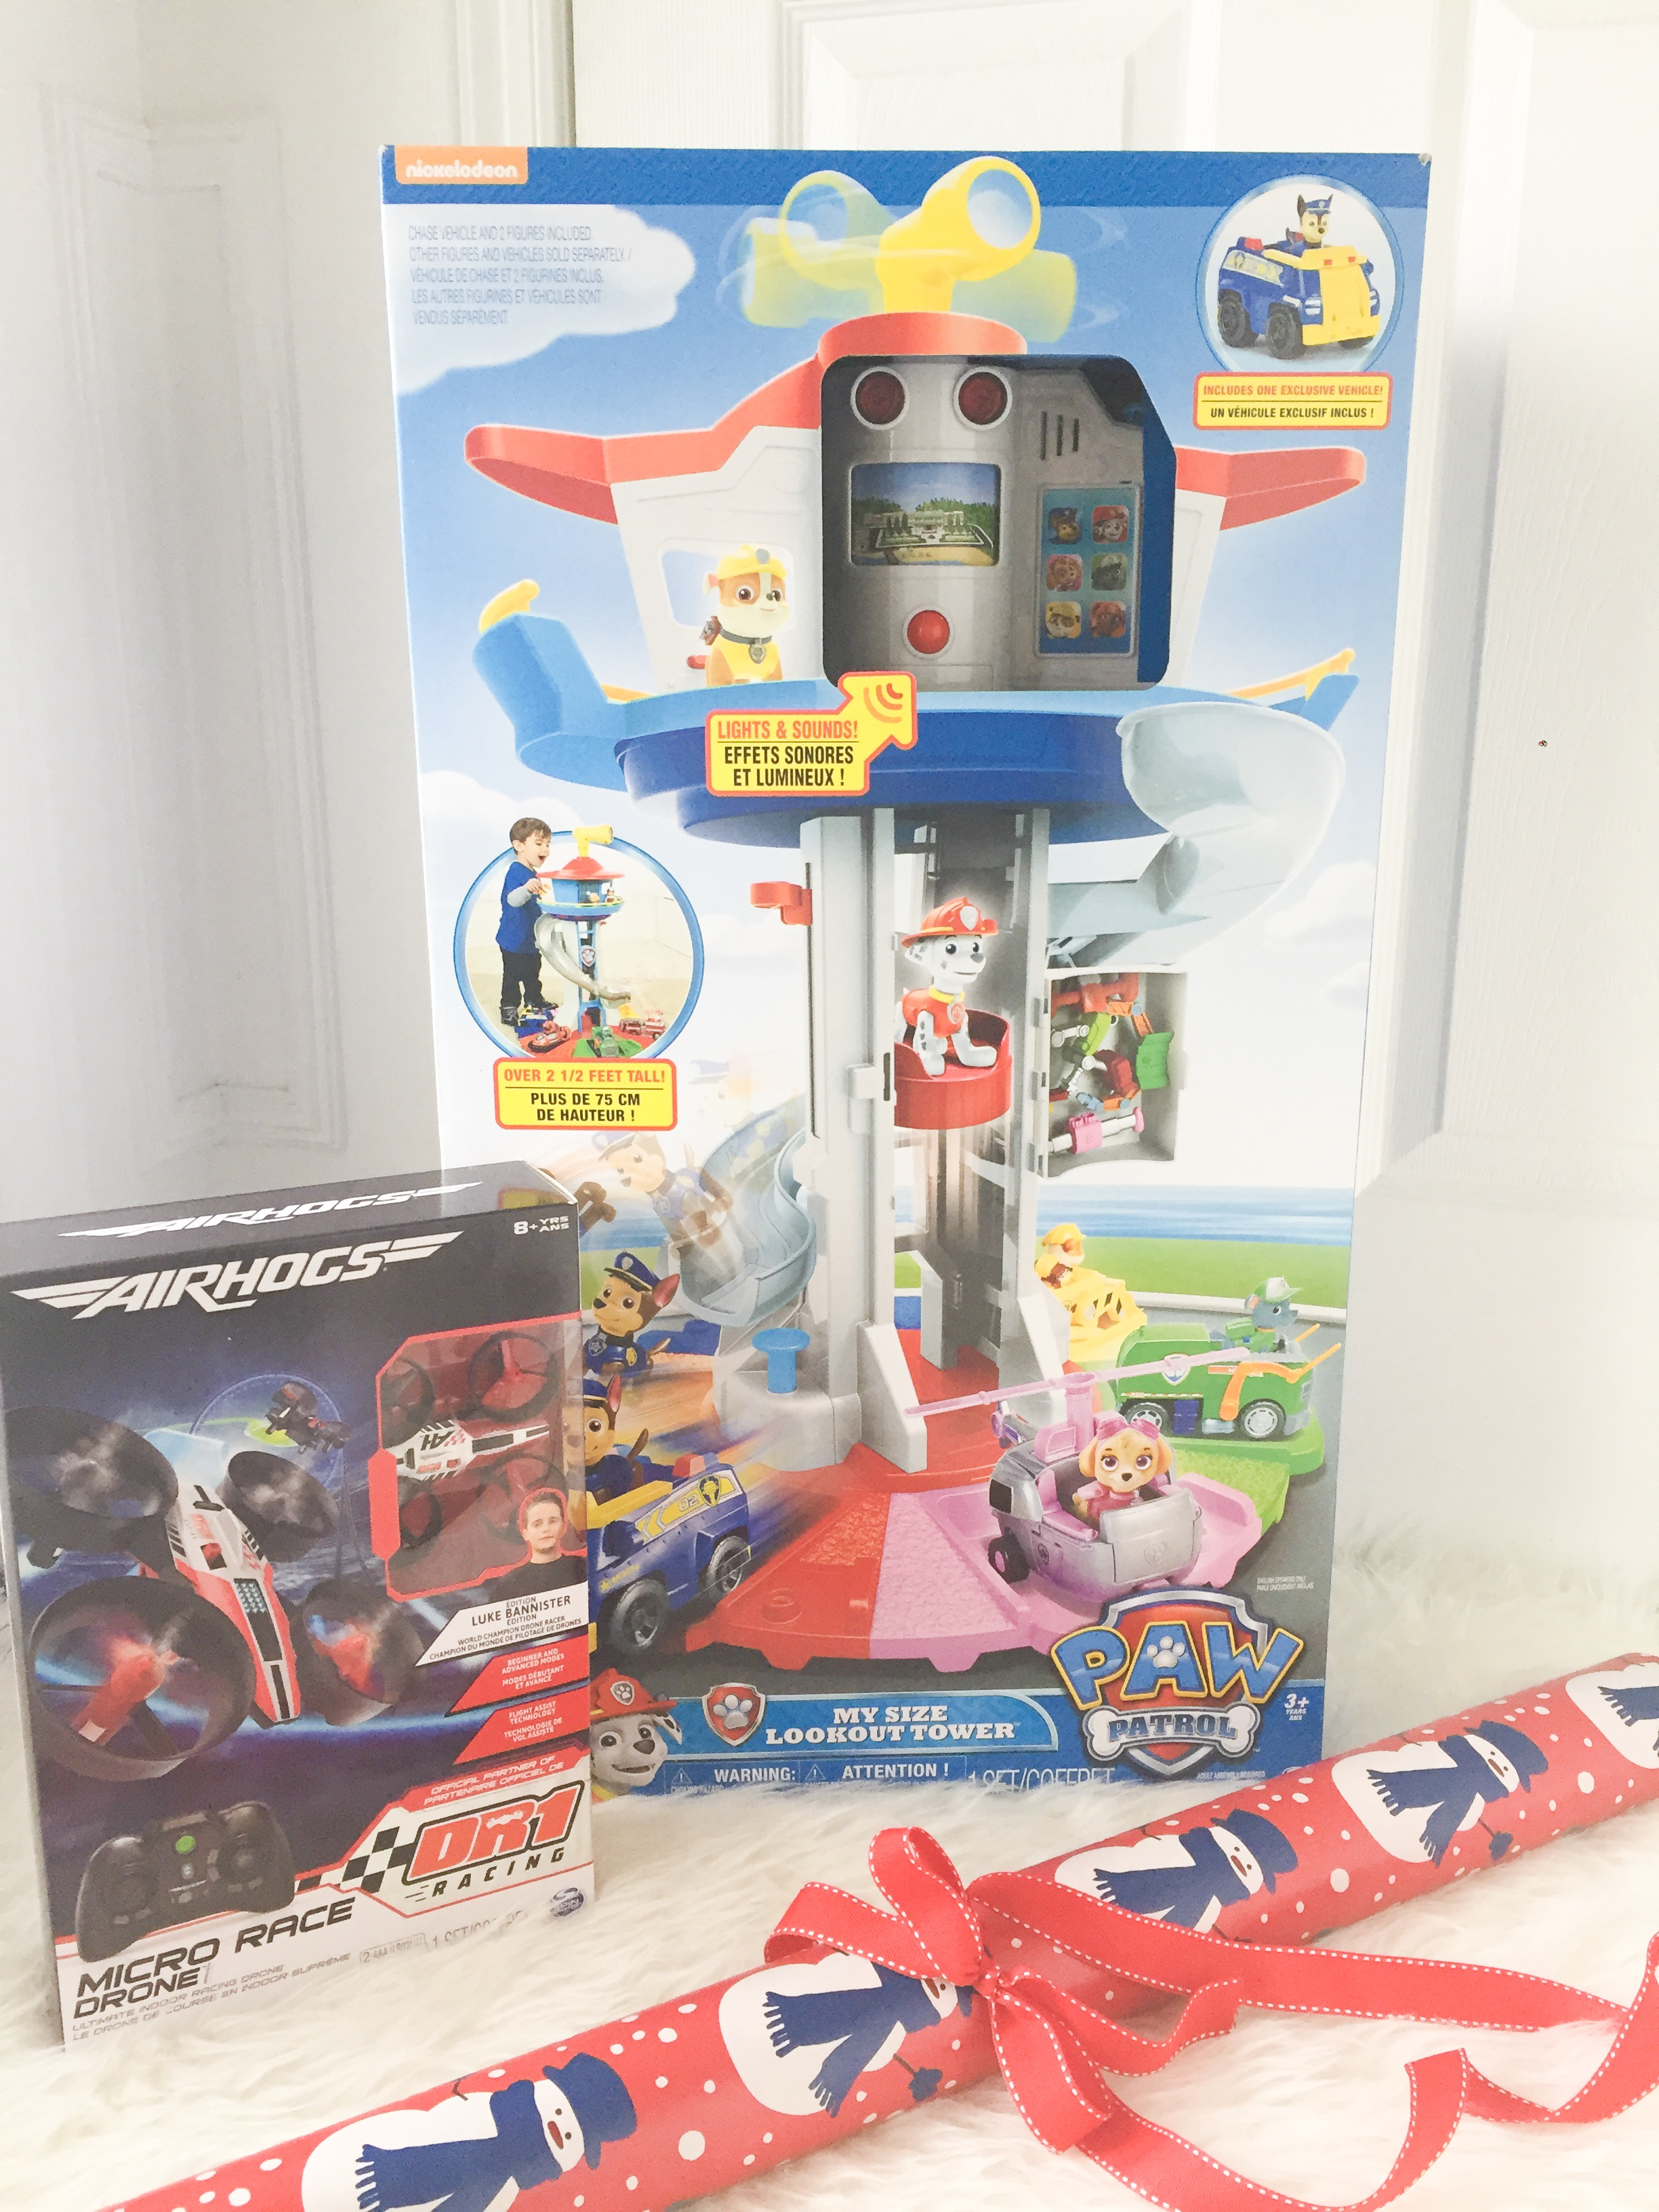 Toy Review: Air Hogs Micro Race Drone & PAW Patrol My Size